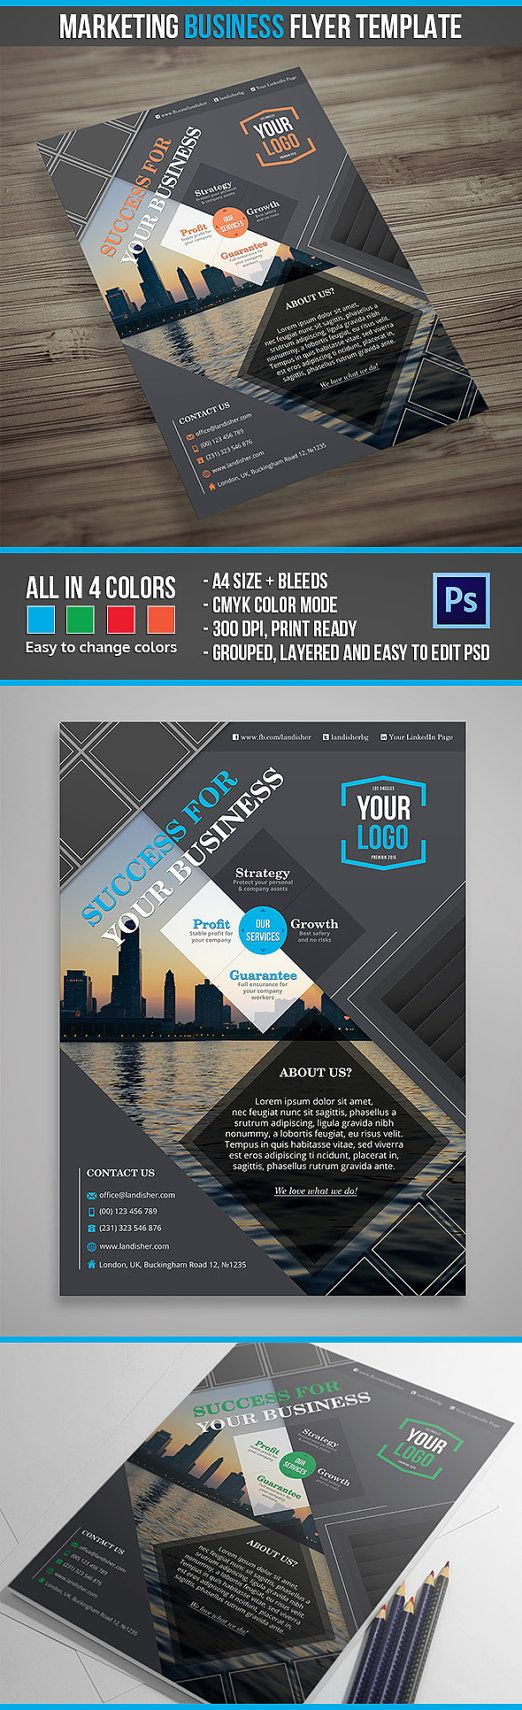 Marketing Business Flyer Psd Template  Easy To Customize  Ideas